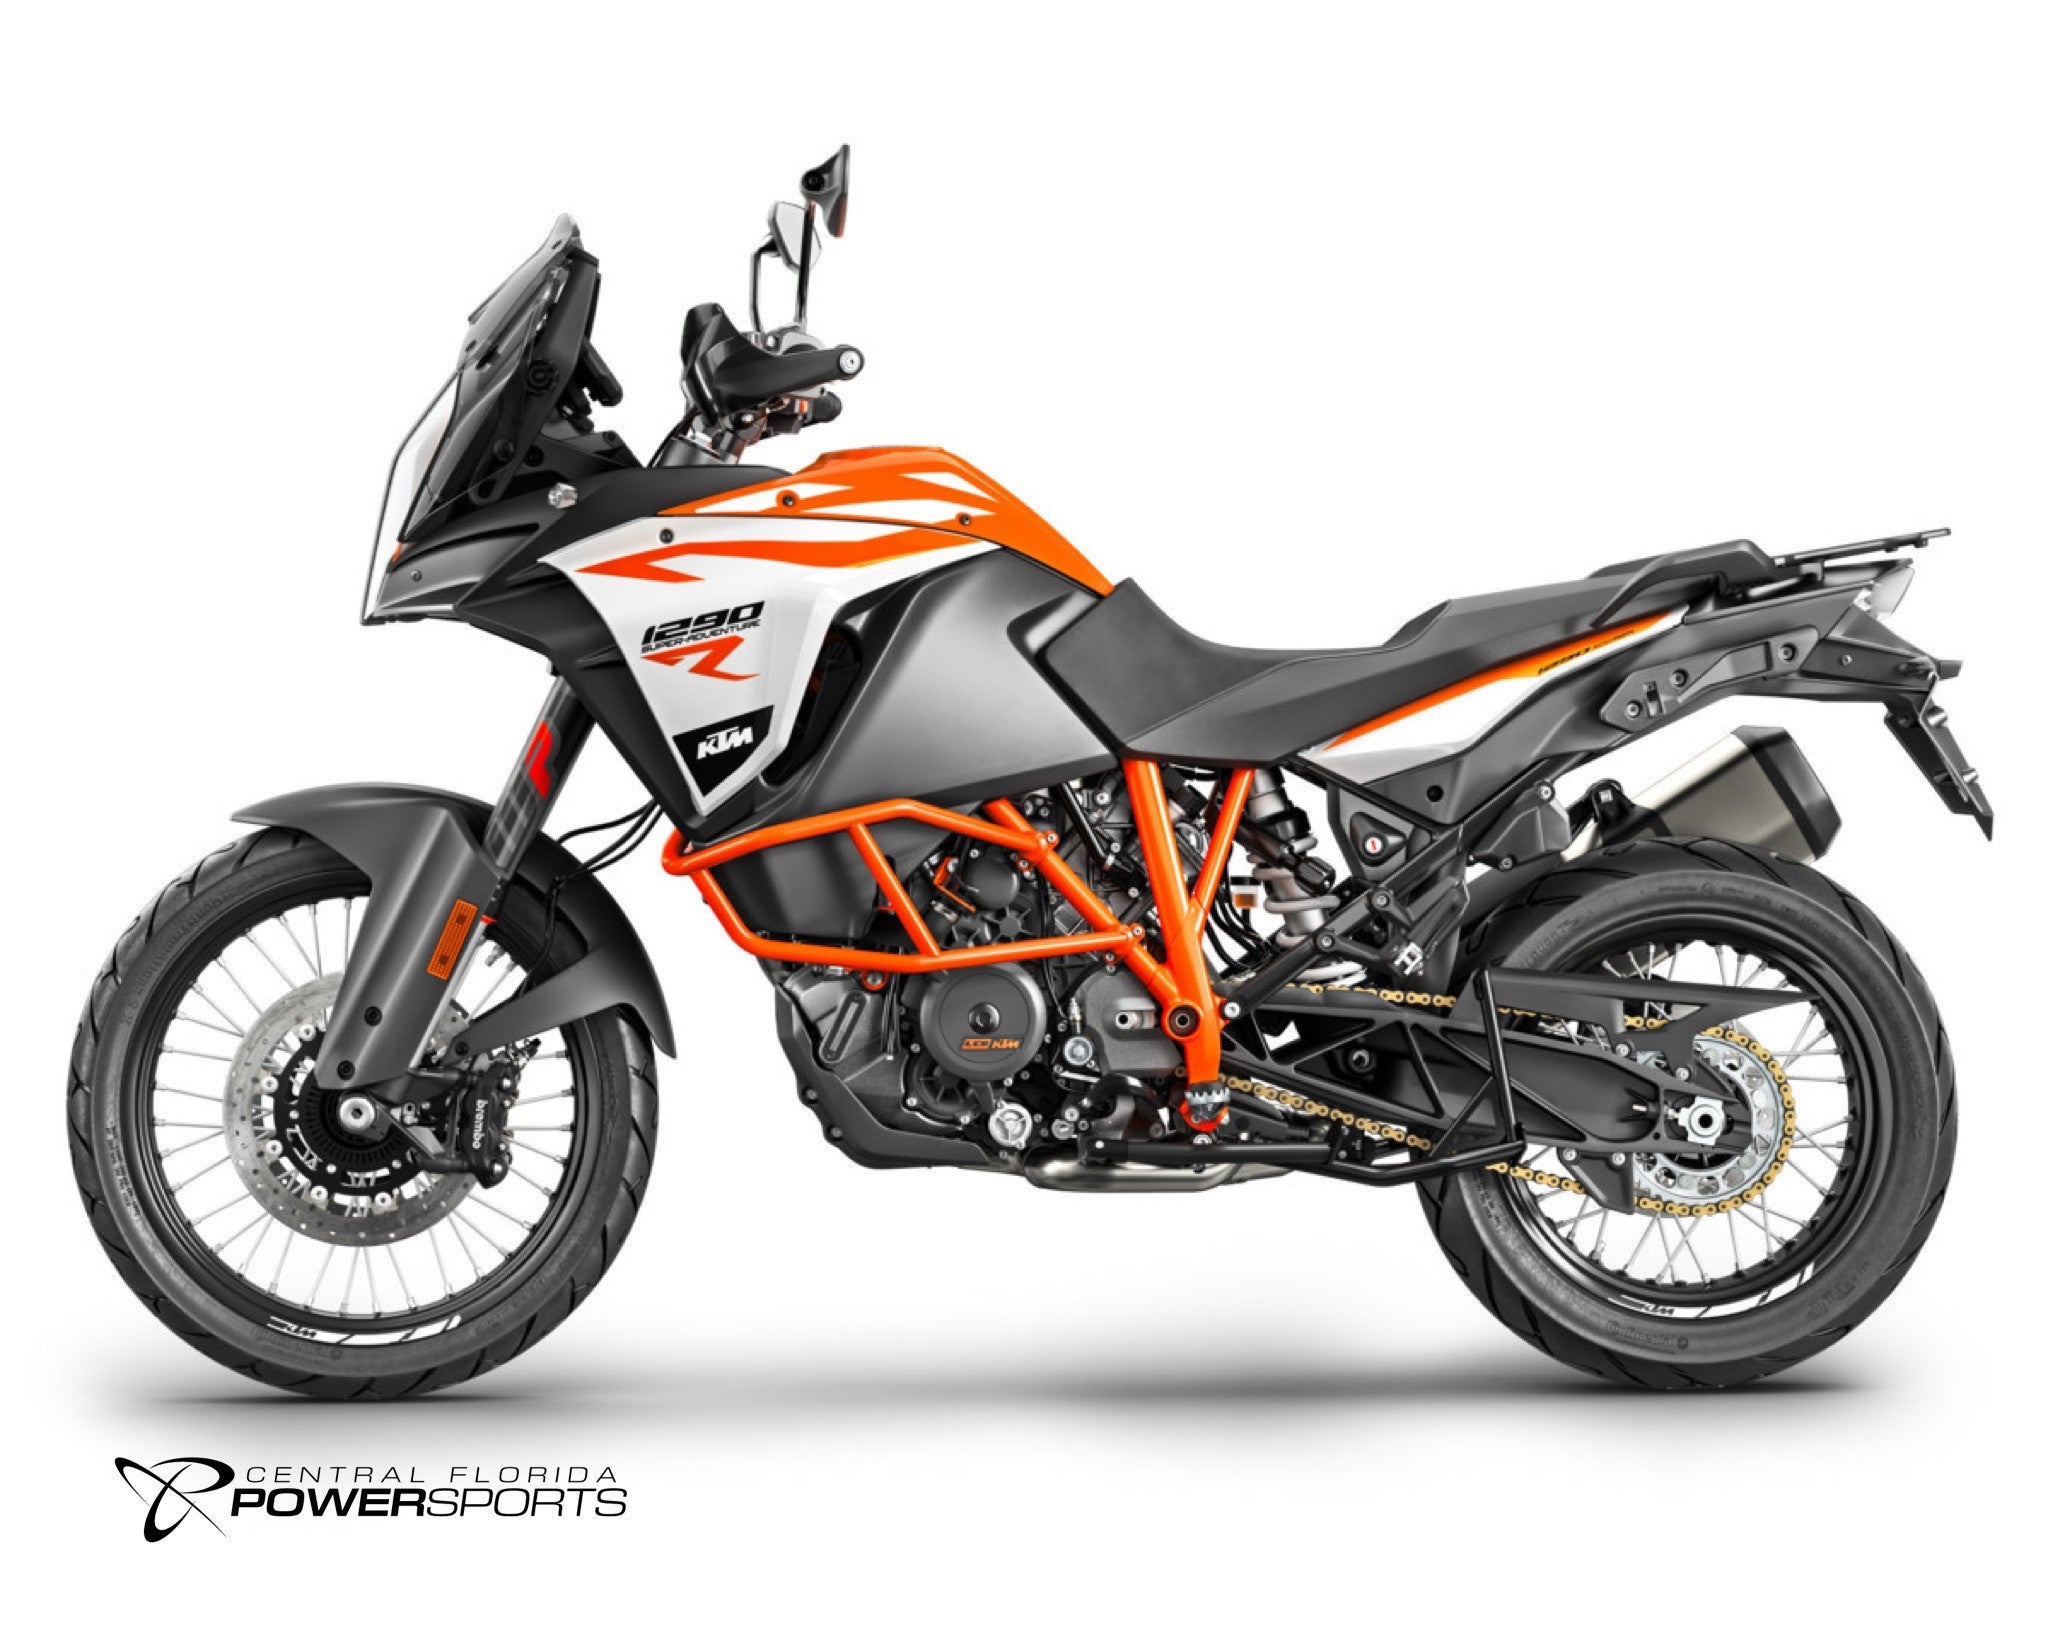 ... 2017 KTM 1290 Super Adventure R - Motorcycle For Sale - Central Florida  PowerSports ...